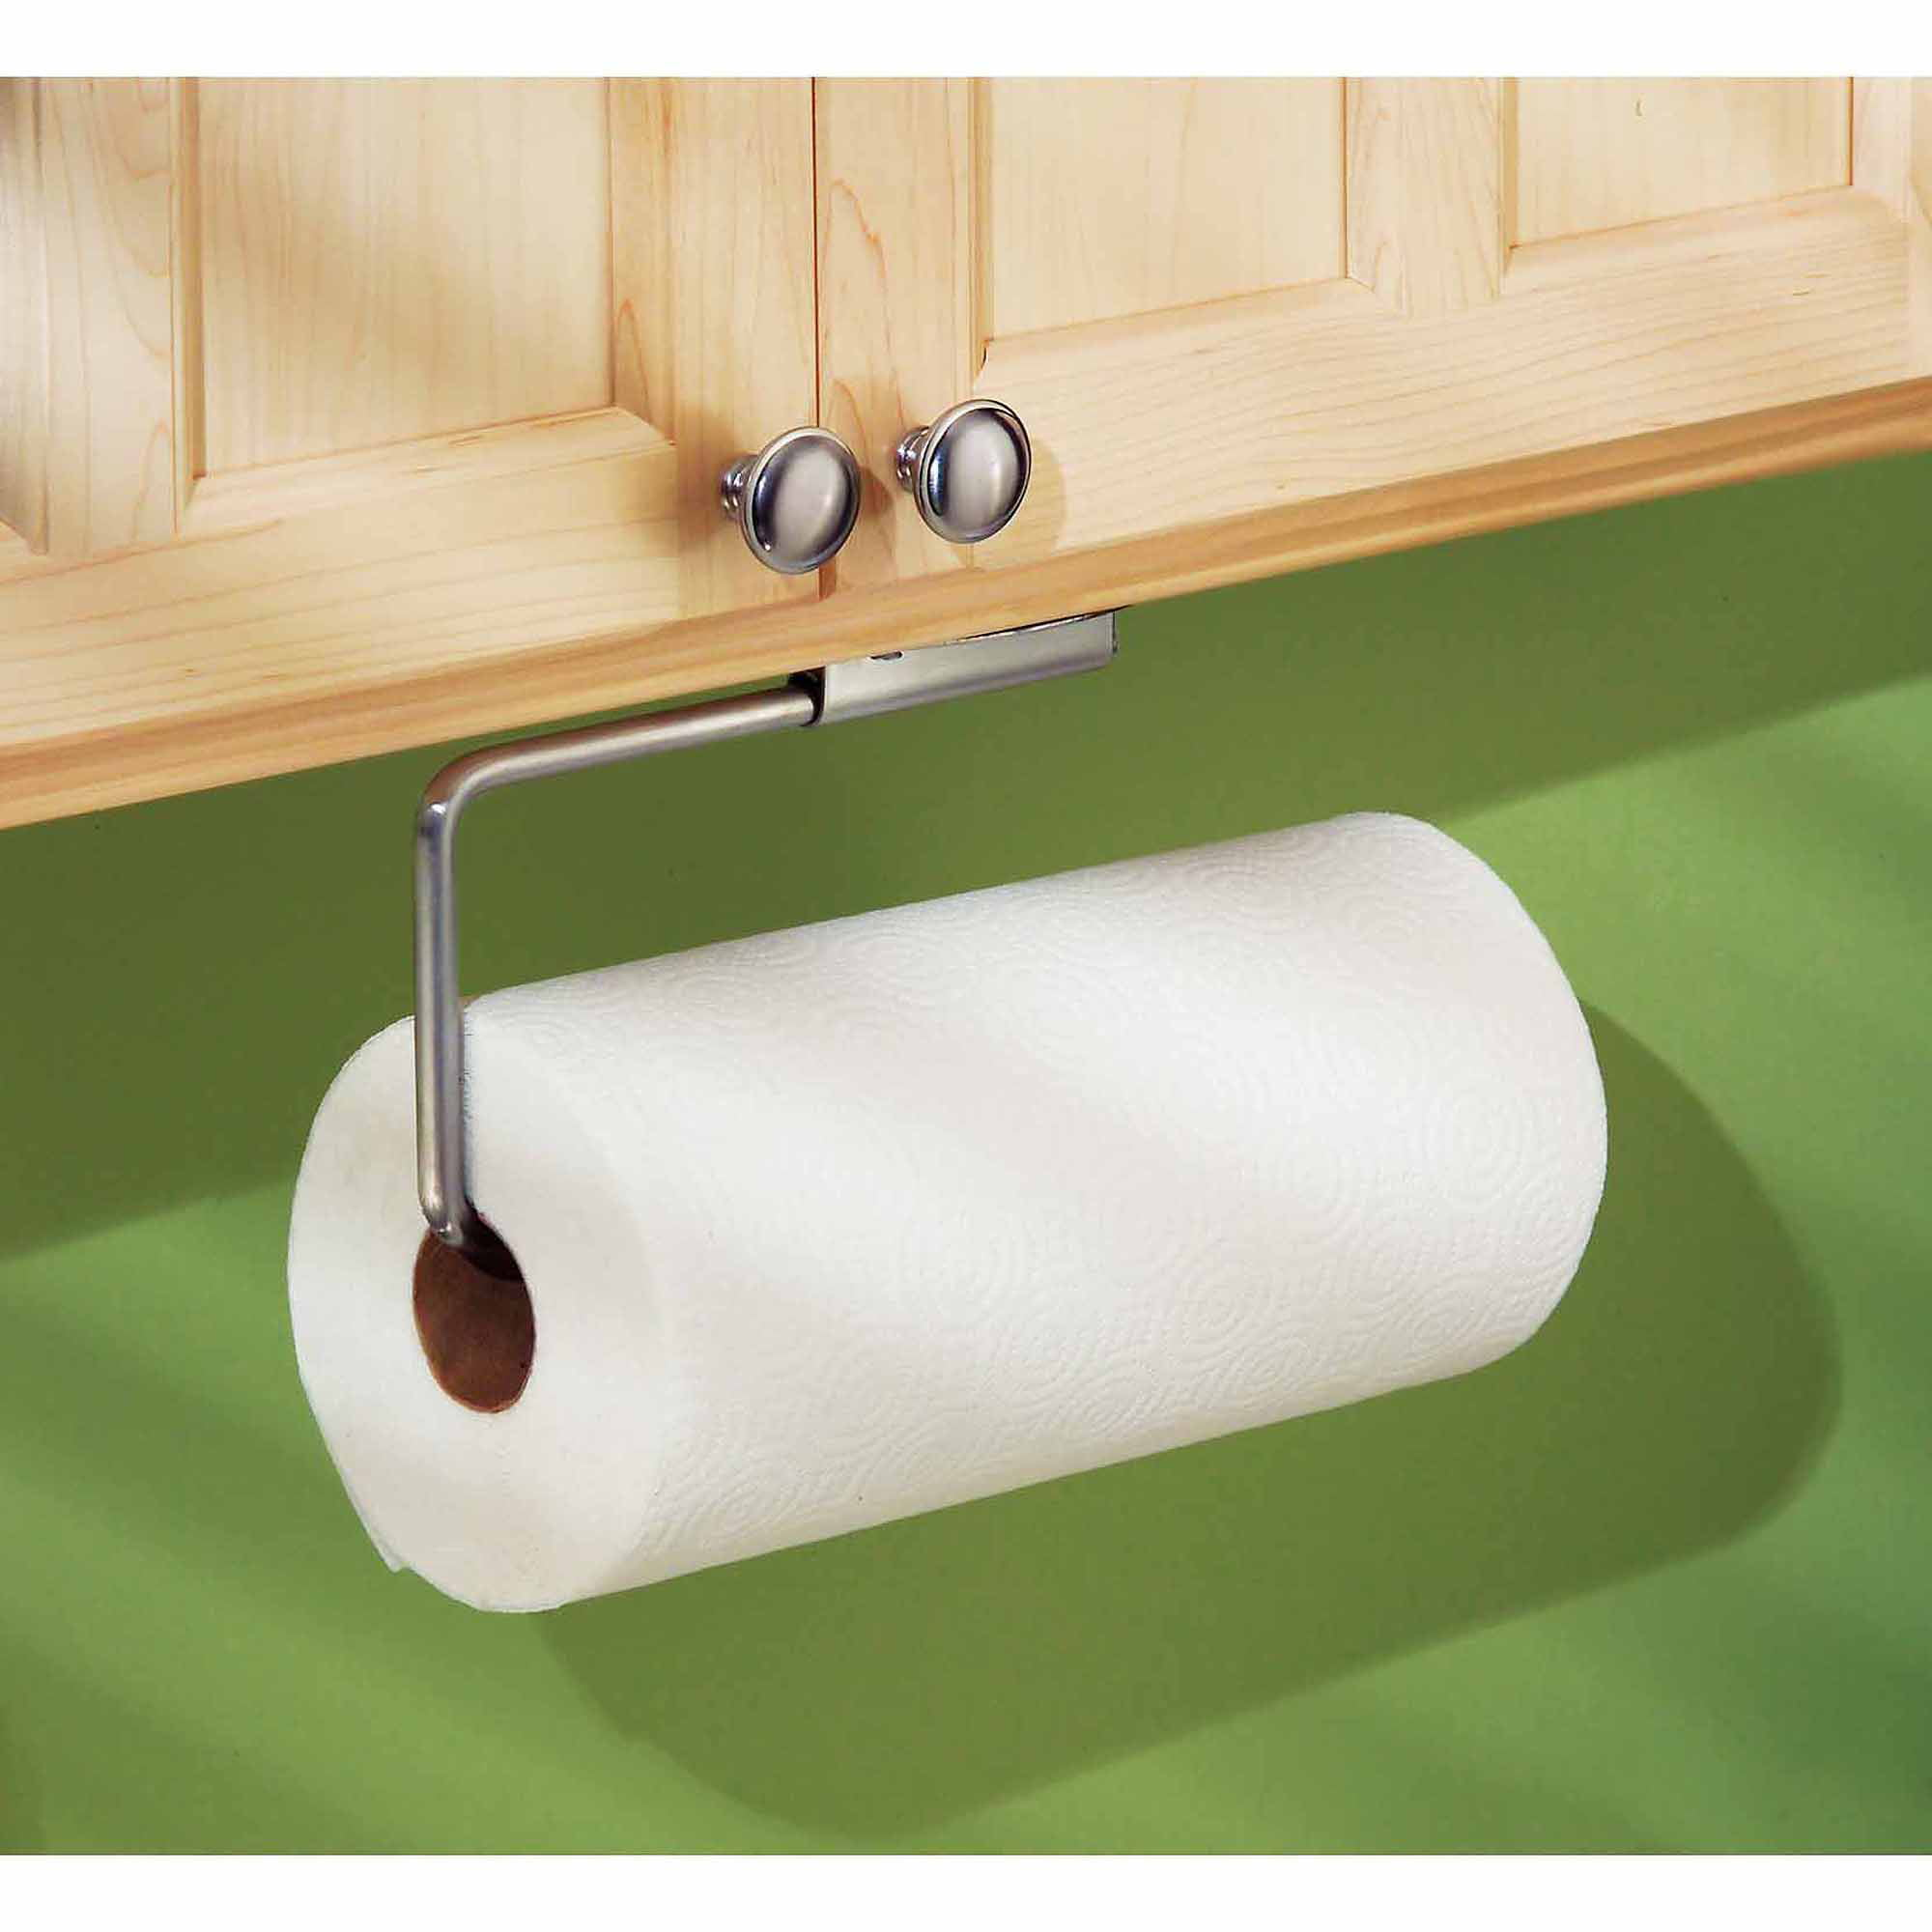 Wall Paper Towel Holder interdesign forma swivel paper towel holder for kitchen, wall